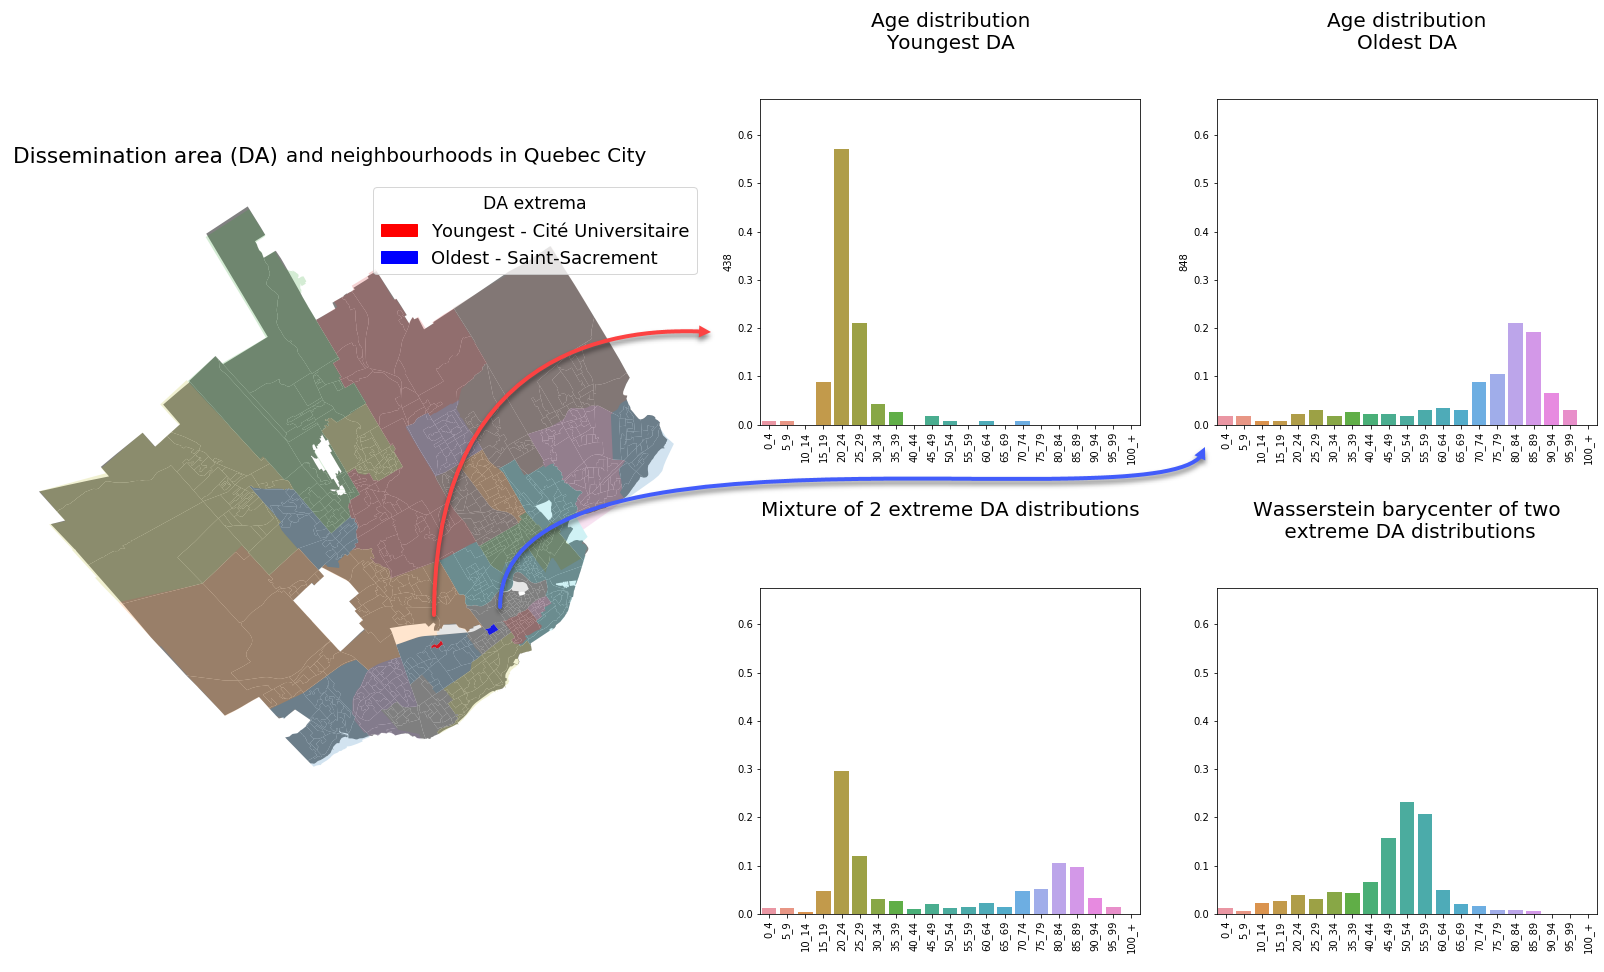 In the map on the left, different colors are used to identify different neighbourhoods and the pale white lines indicate the DA boundaries. The histograms in the bottom row respectively illustrate the Euclidean and Wasserstein barycenters of the two extreme distributions presented in the top row.